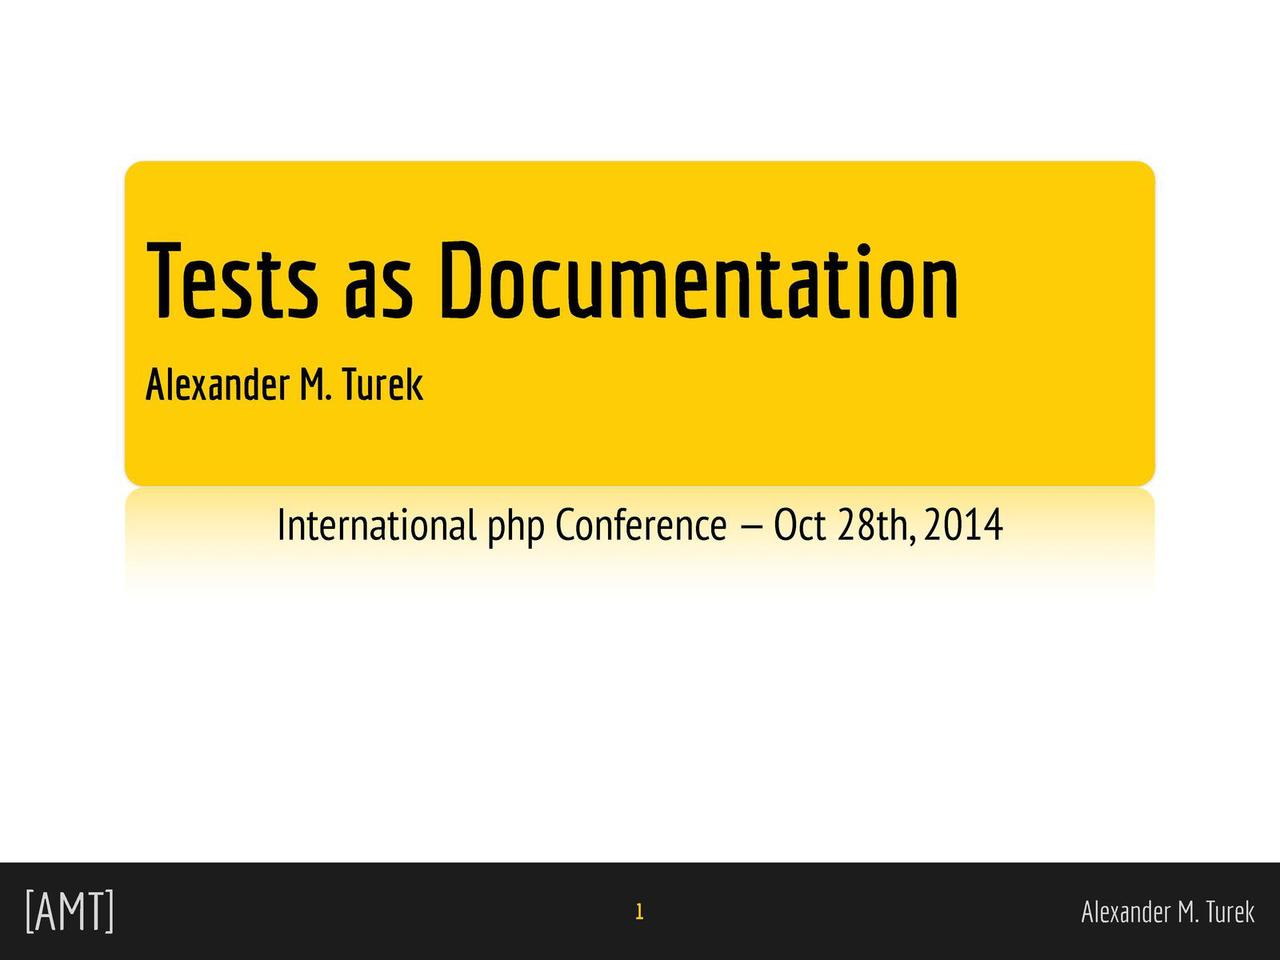 Tests as Documentation (IPC14)